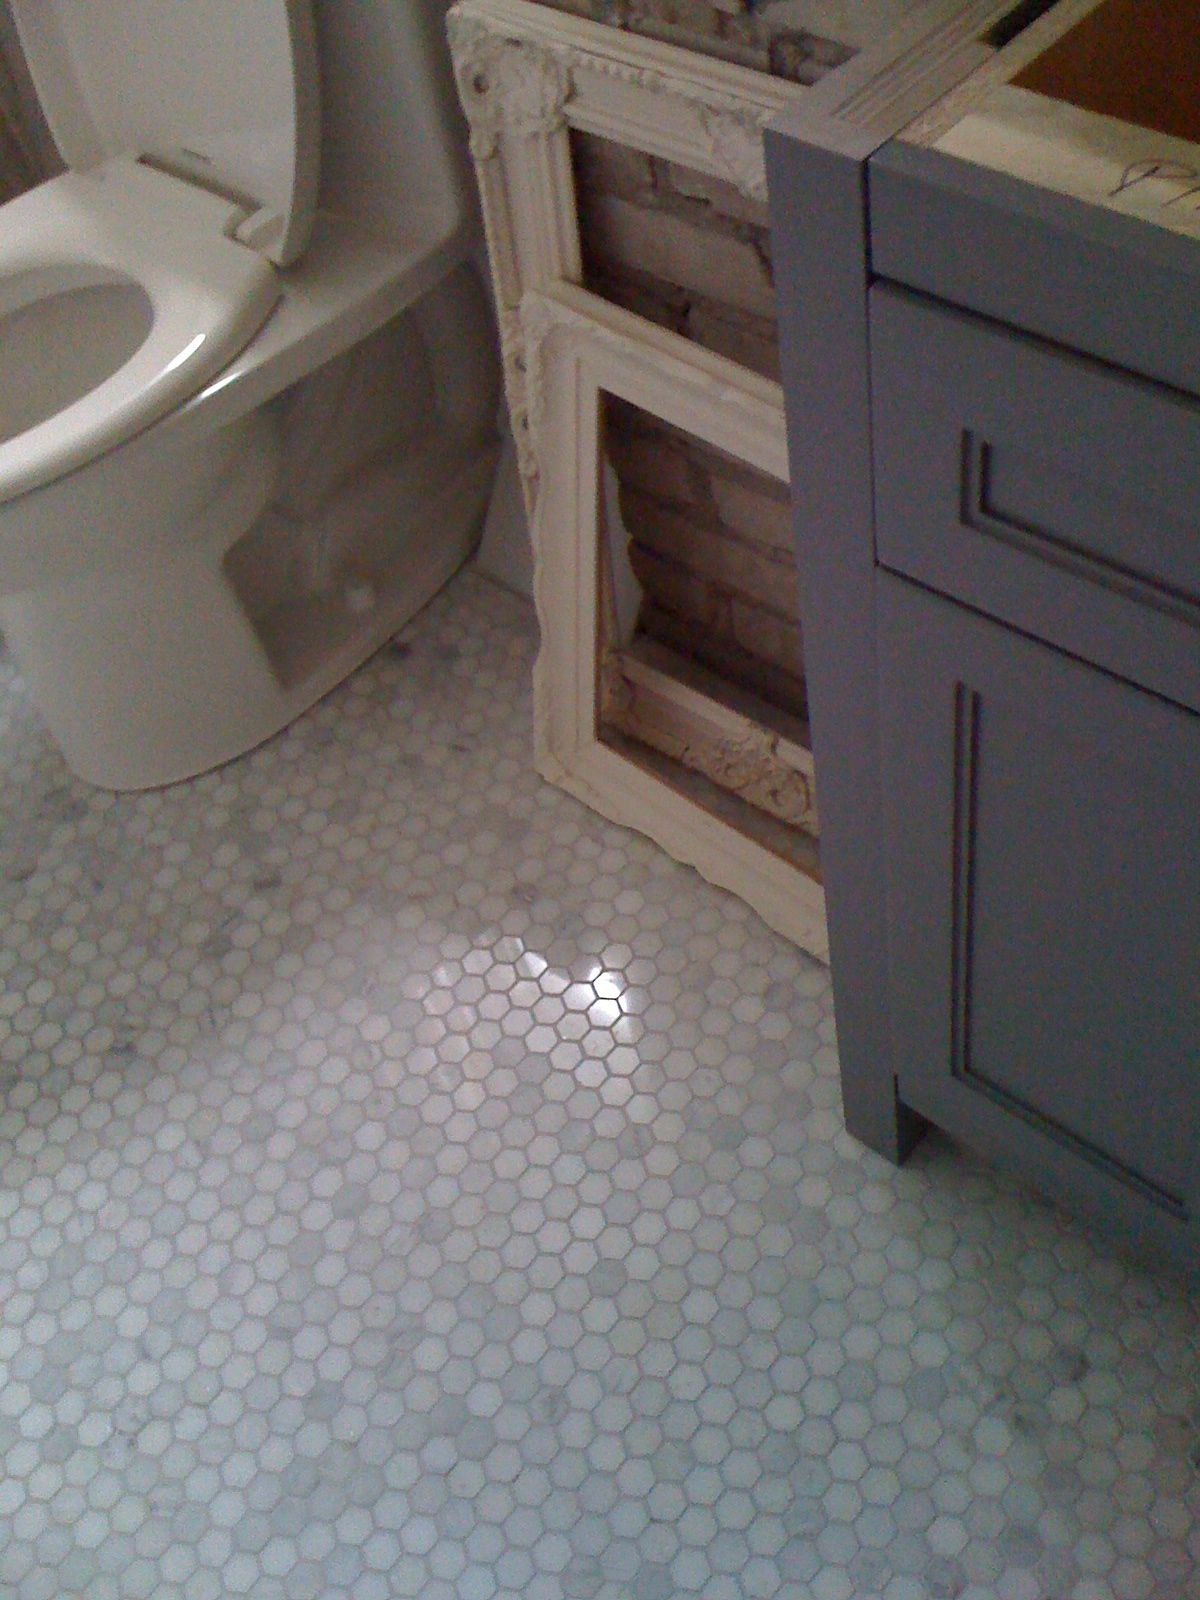 Colored Grout And New Tile Create Fresh Bathroom Look: Beautiful Installation Of Carrara Marble 1x1 Hex Tile